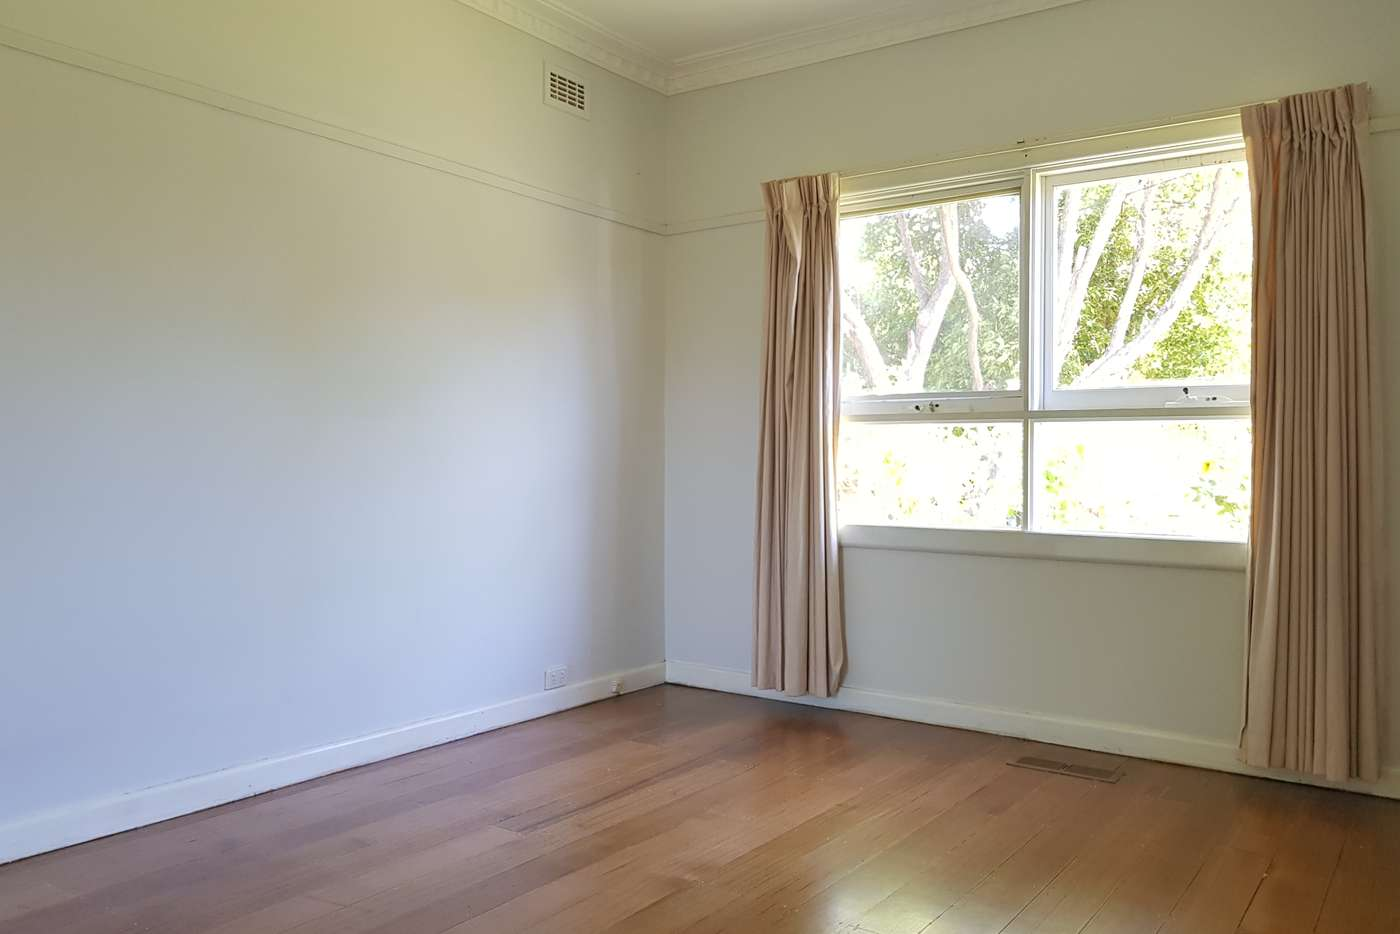 Seventh view of Homely unit listing, 1/9 Russell Street, Nunawading VIC 3131